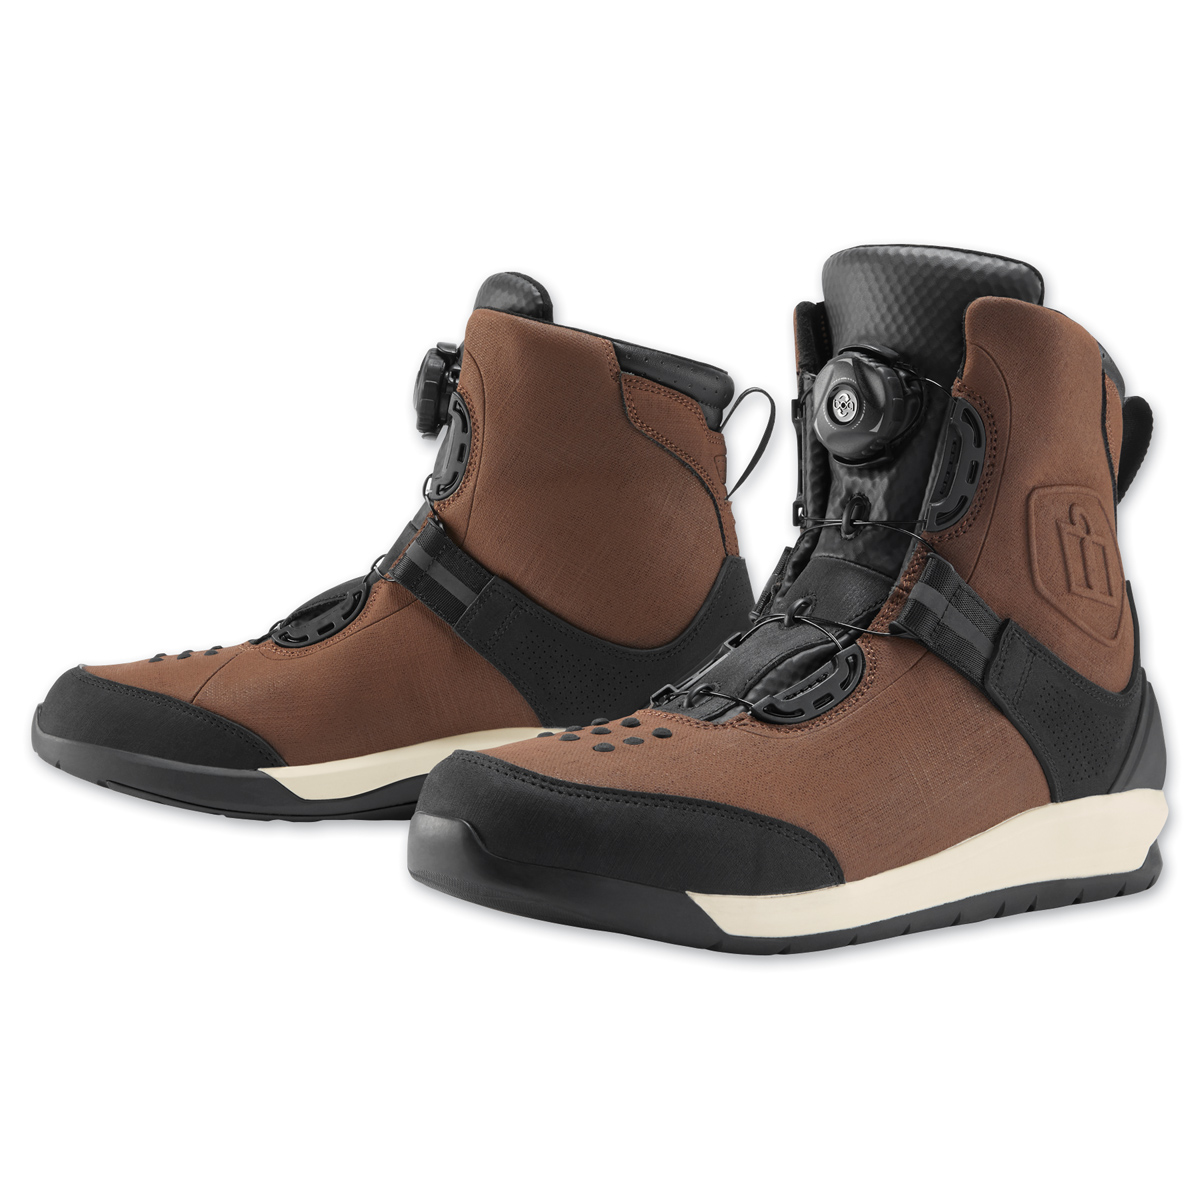 ICON Men's Patrol 2 Brown Boots